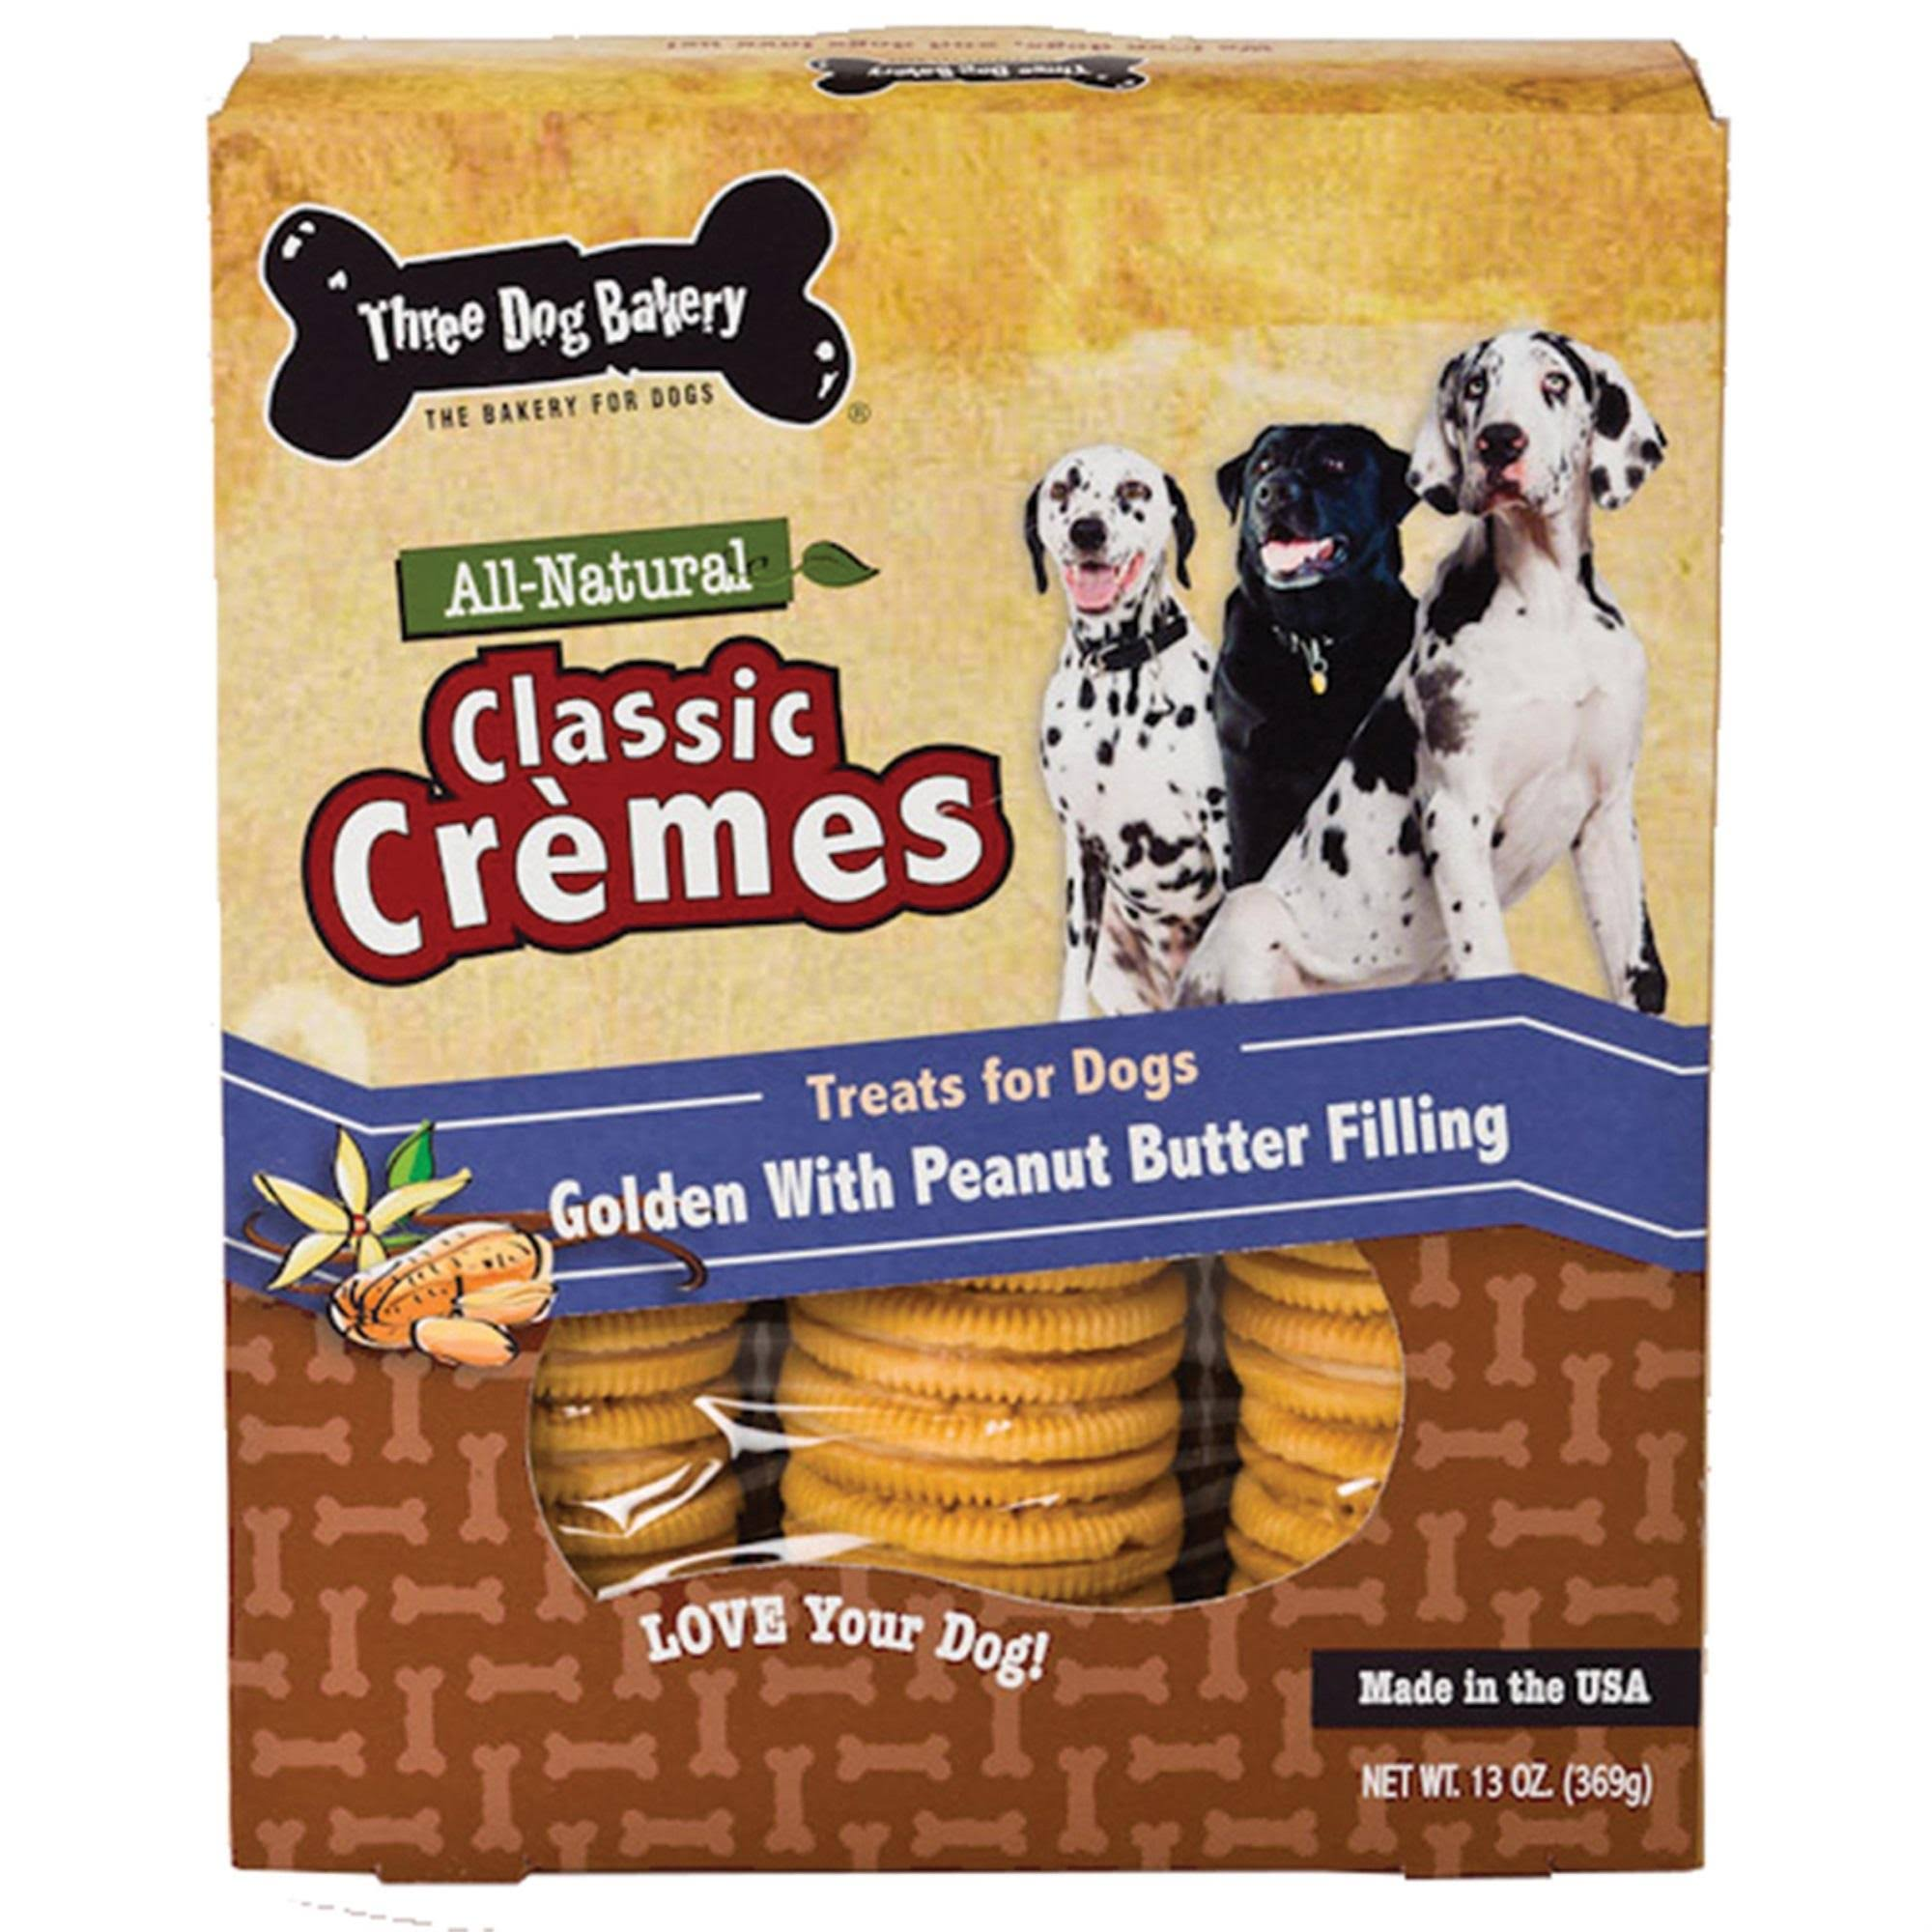 Three Dog Bakery Classic Cremes Cookie Treats for Dogs - Golden with Peanut Butter Filling